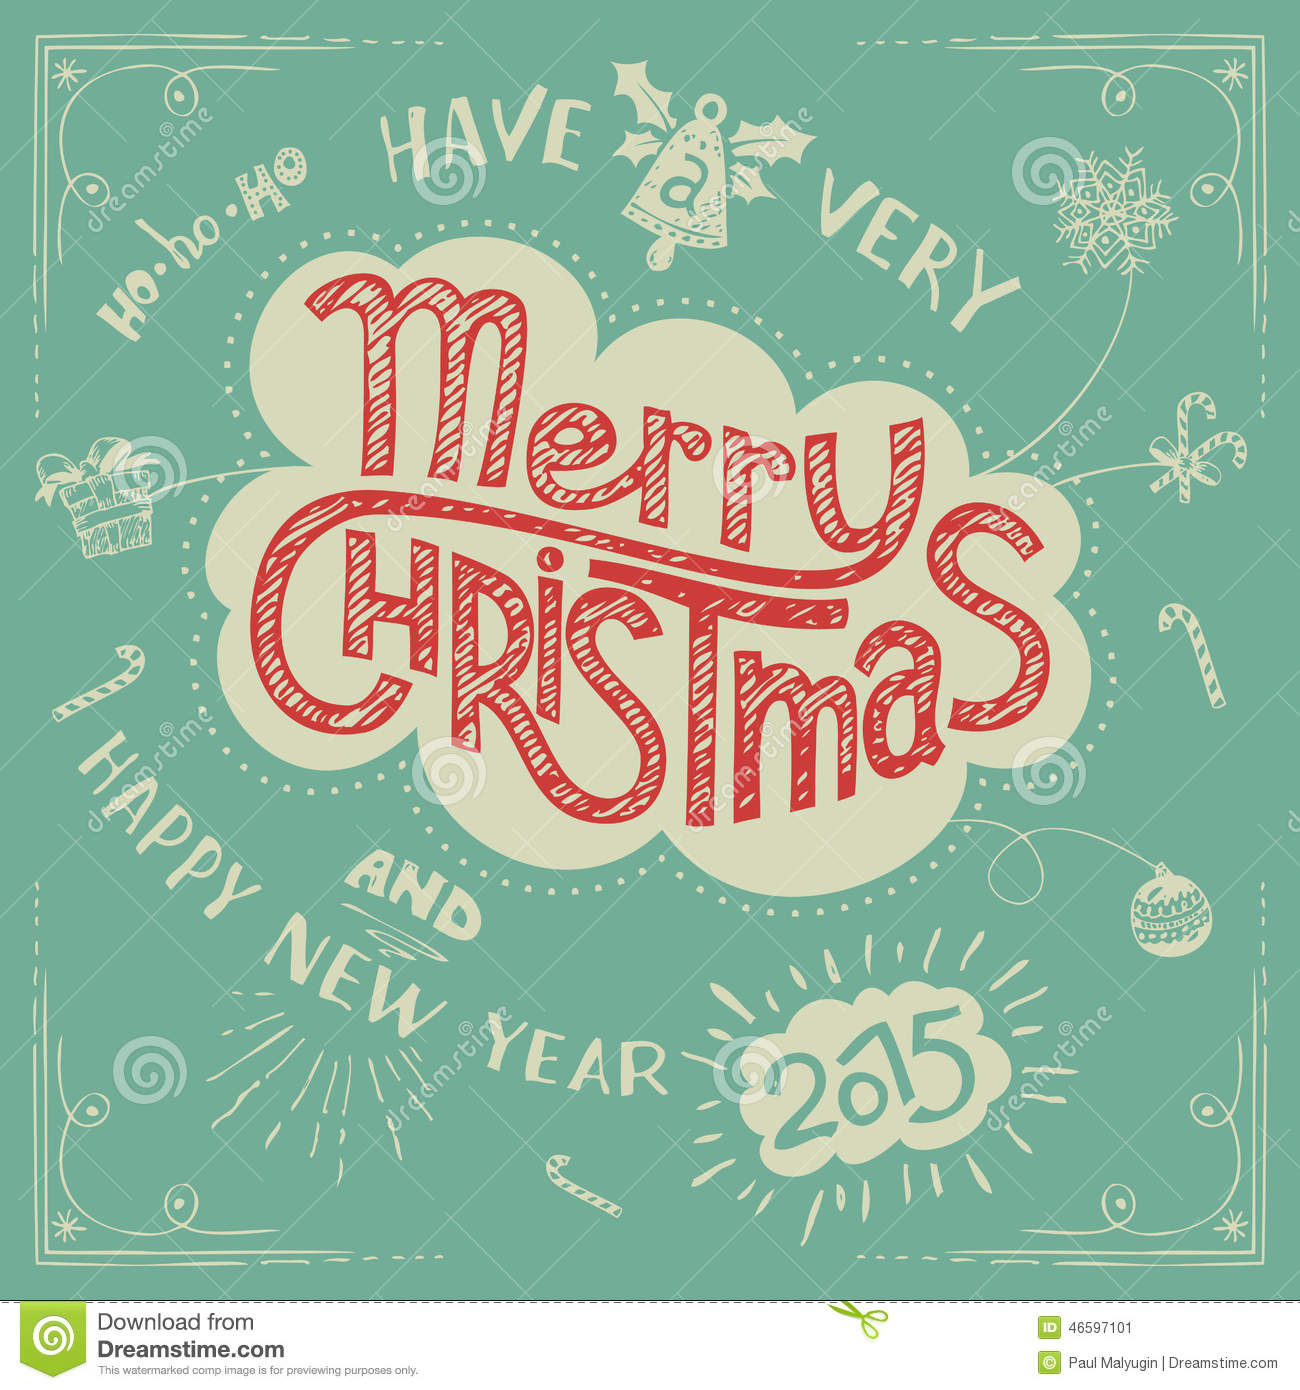 Merry Christmas Doodle Greeting Card Stock Vector - Image ...